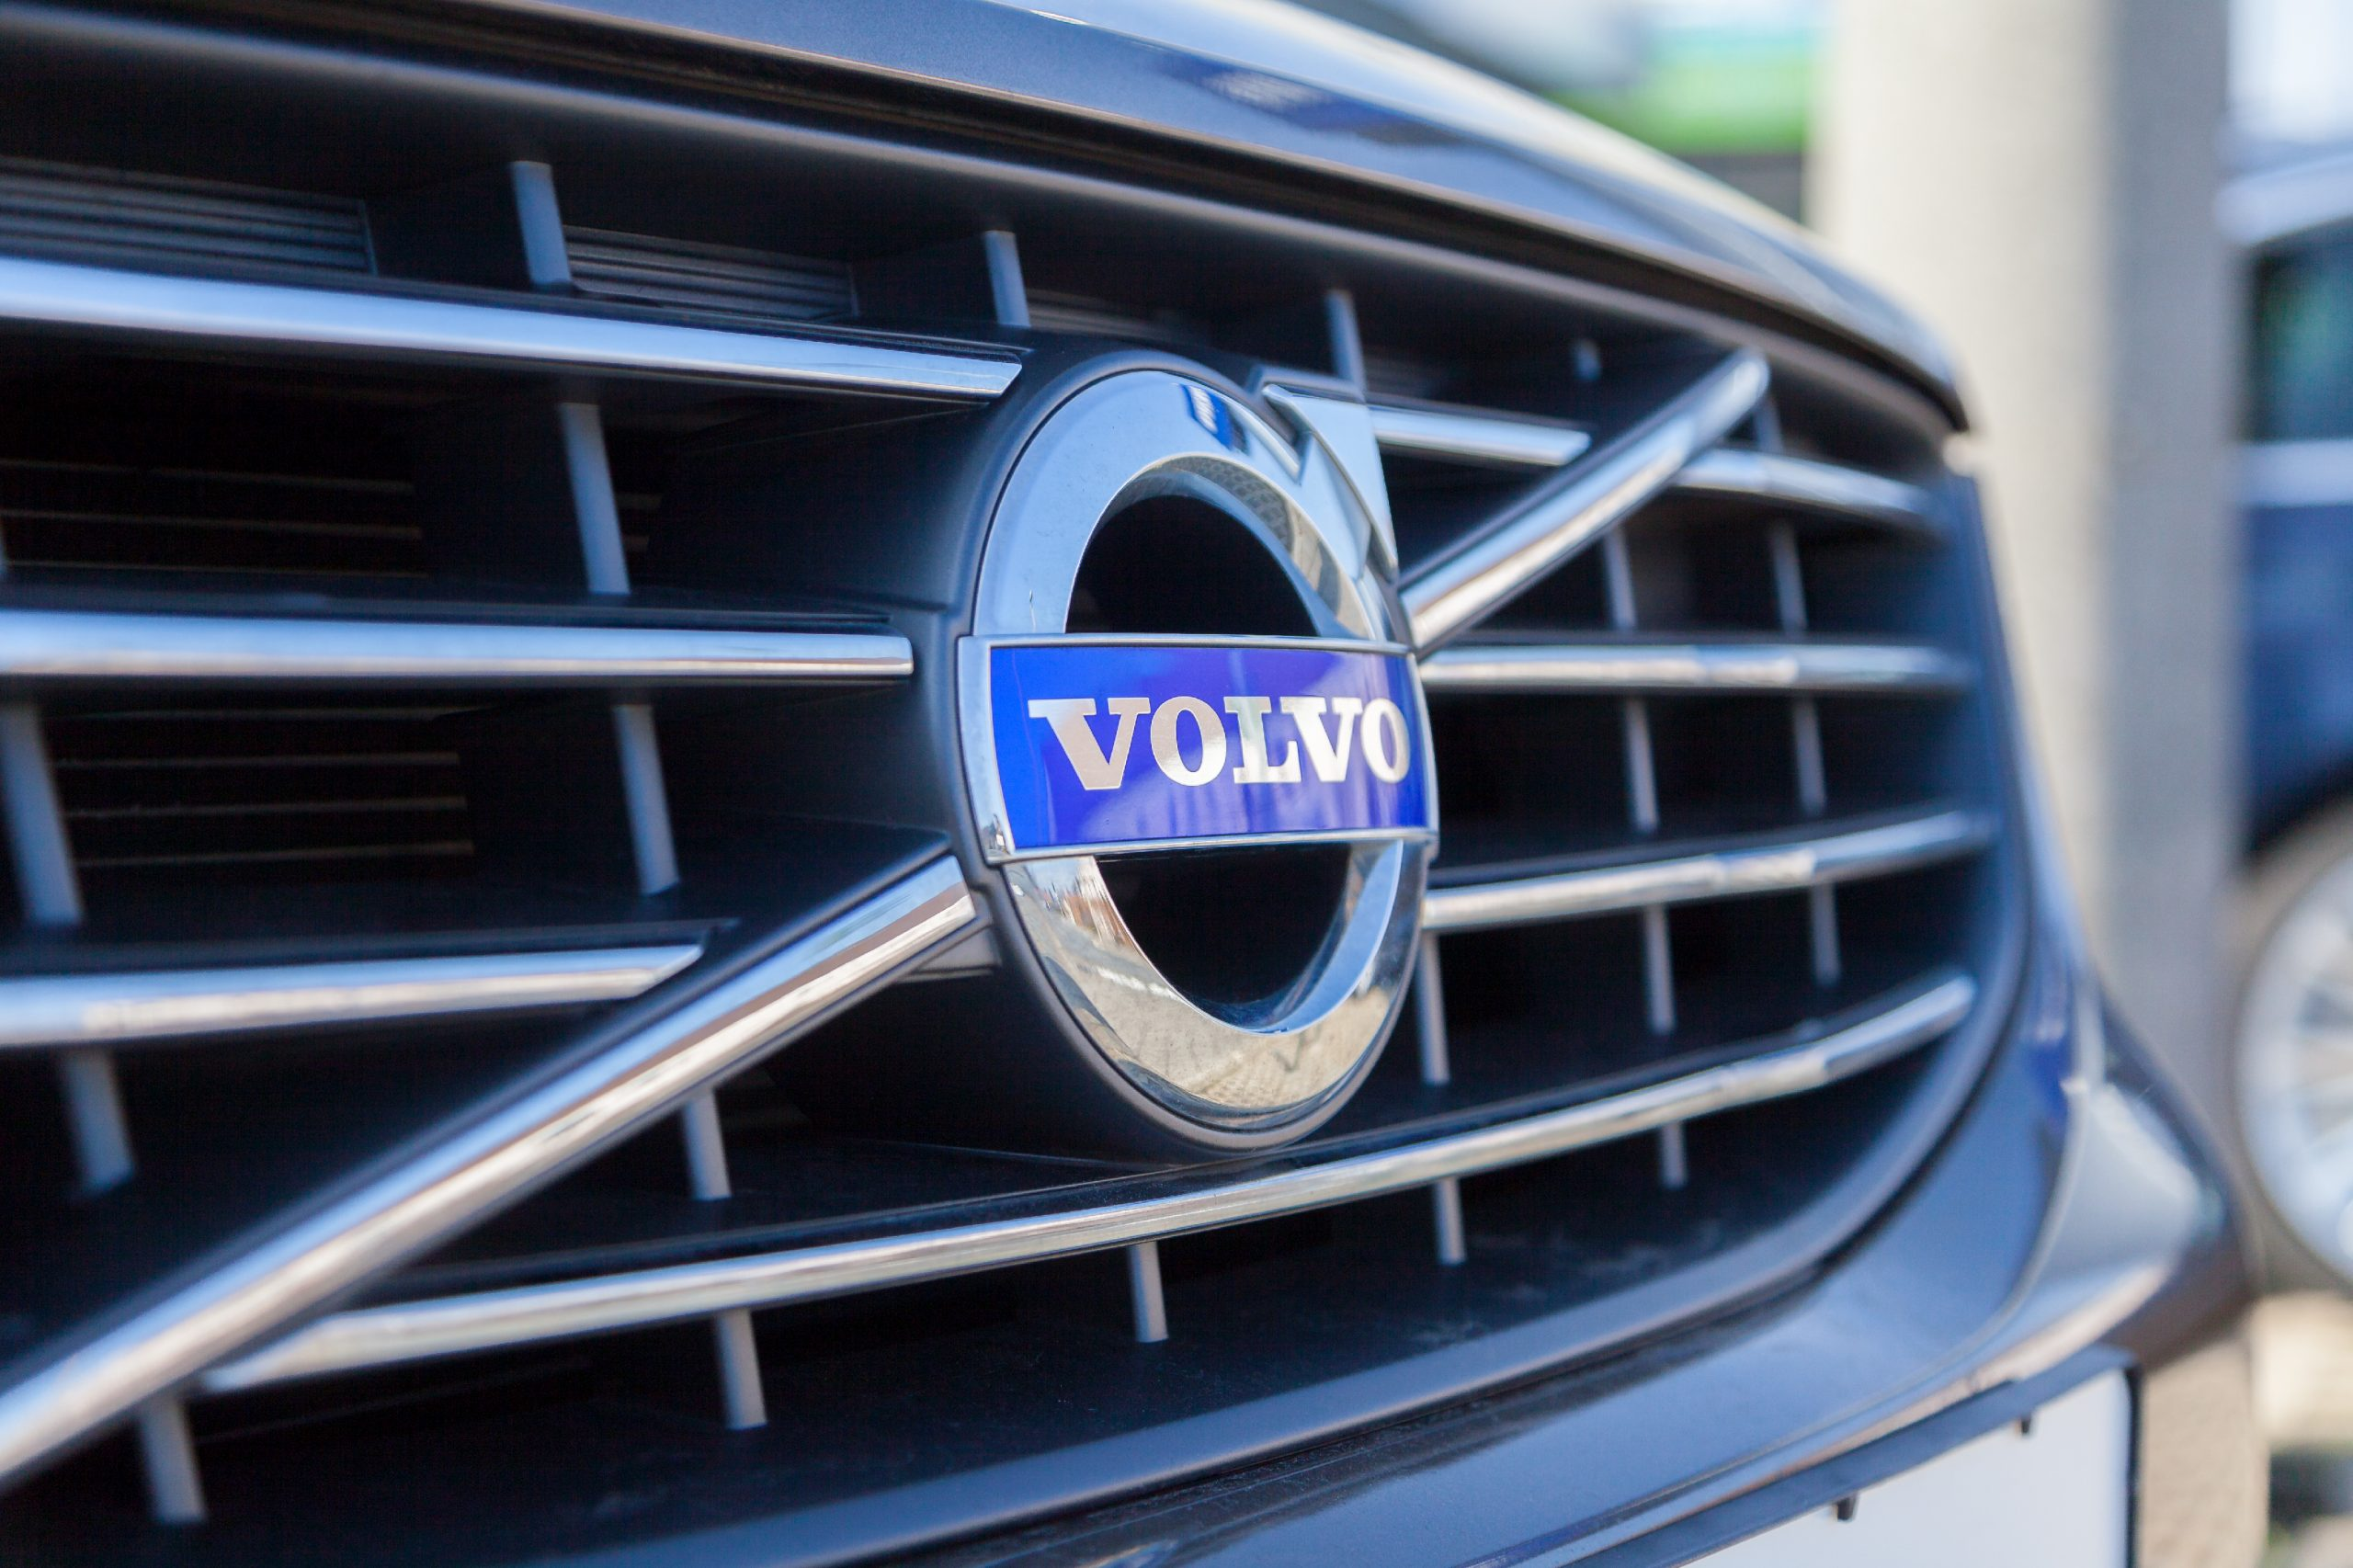 5 things you didn't know about Volvo